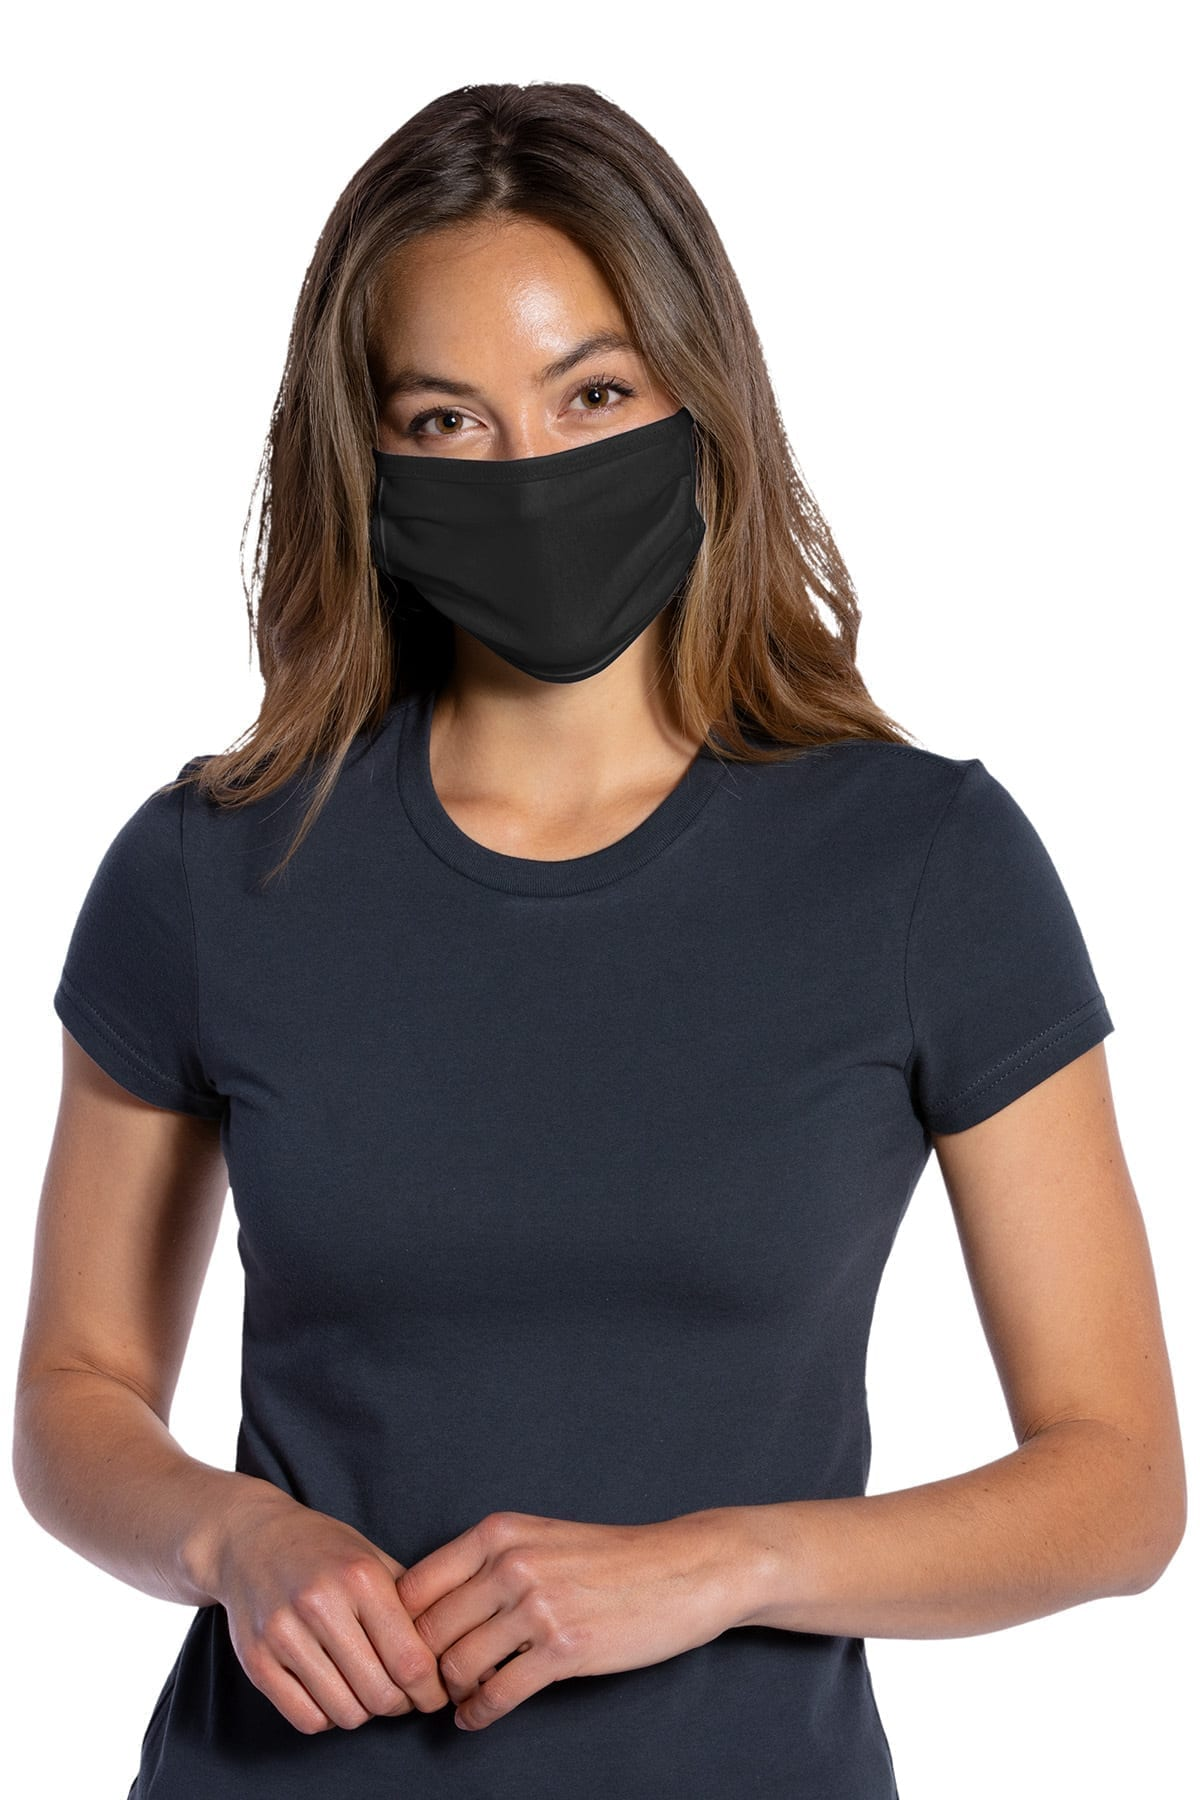 Three-Ply Cotton Washable Knit Face Mask (5 Masks)